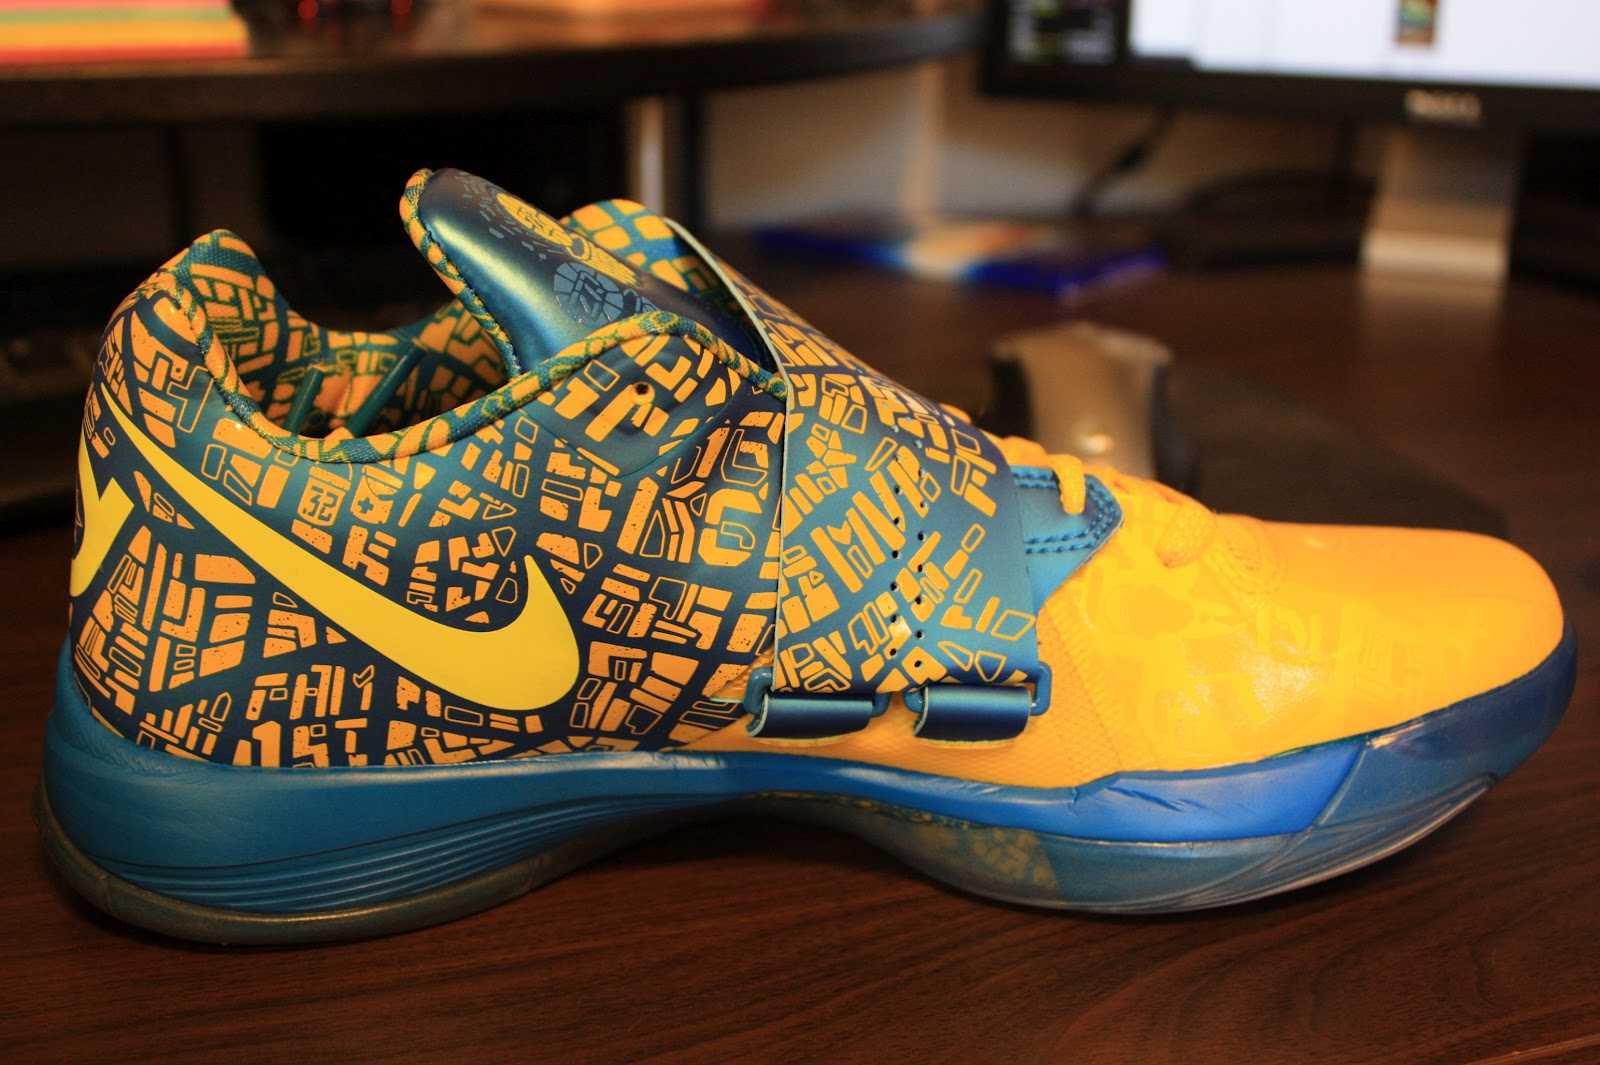 Left Shoe View Kd 3 Scoring Title